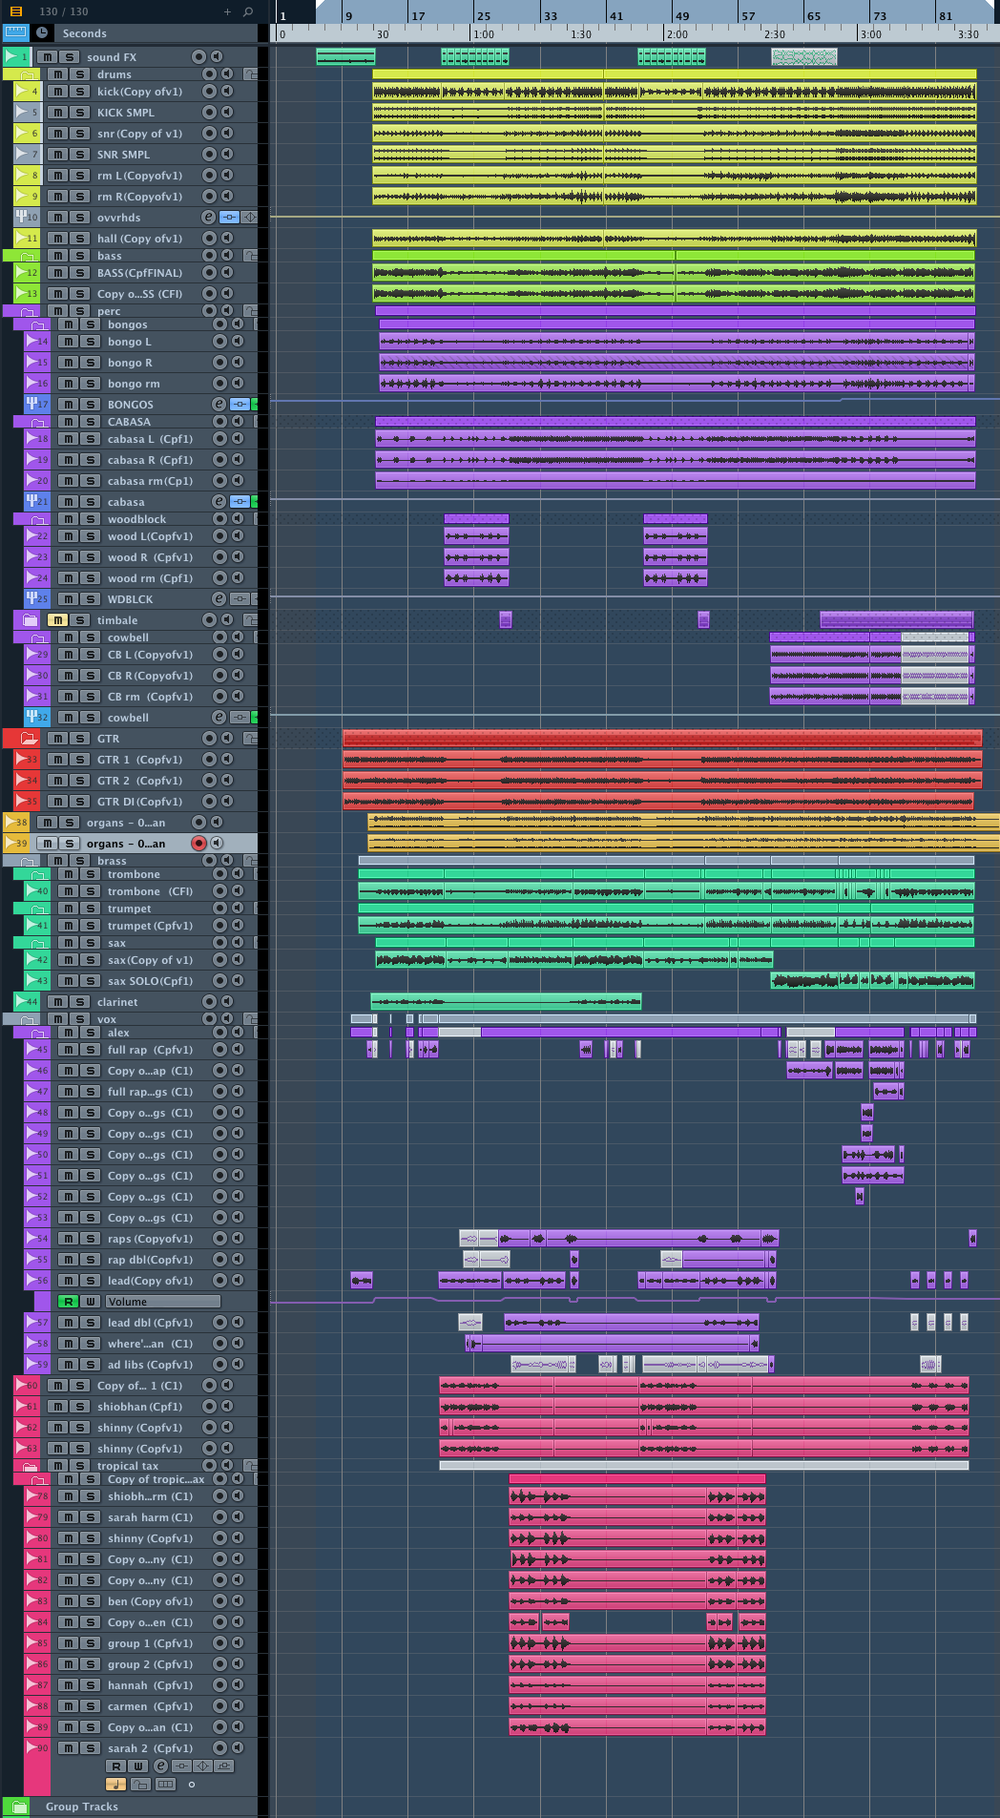 The Cubase project screen for Tropical Tax Haven. From top to bottom:  AQUA: ambient Jungle sounds YELLOW: drums (note Kick and Snare sample tracks to enhance the live sounds GREEN: Bass guitar (one DI and one reamped PURPLE: Percussion (L and R and ROOM for each instrument)  Bongos/Cabasa/Woodblock/Cowbell RED: Guitar ORANGE: Organ (two midi organs mixed together AQUA: Brass. Trombone/Trumpet/Sax PURPLE: Alex's vocals. Note the rap hype vocals to the right hand side here. PINK: Backing Vocals